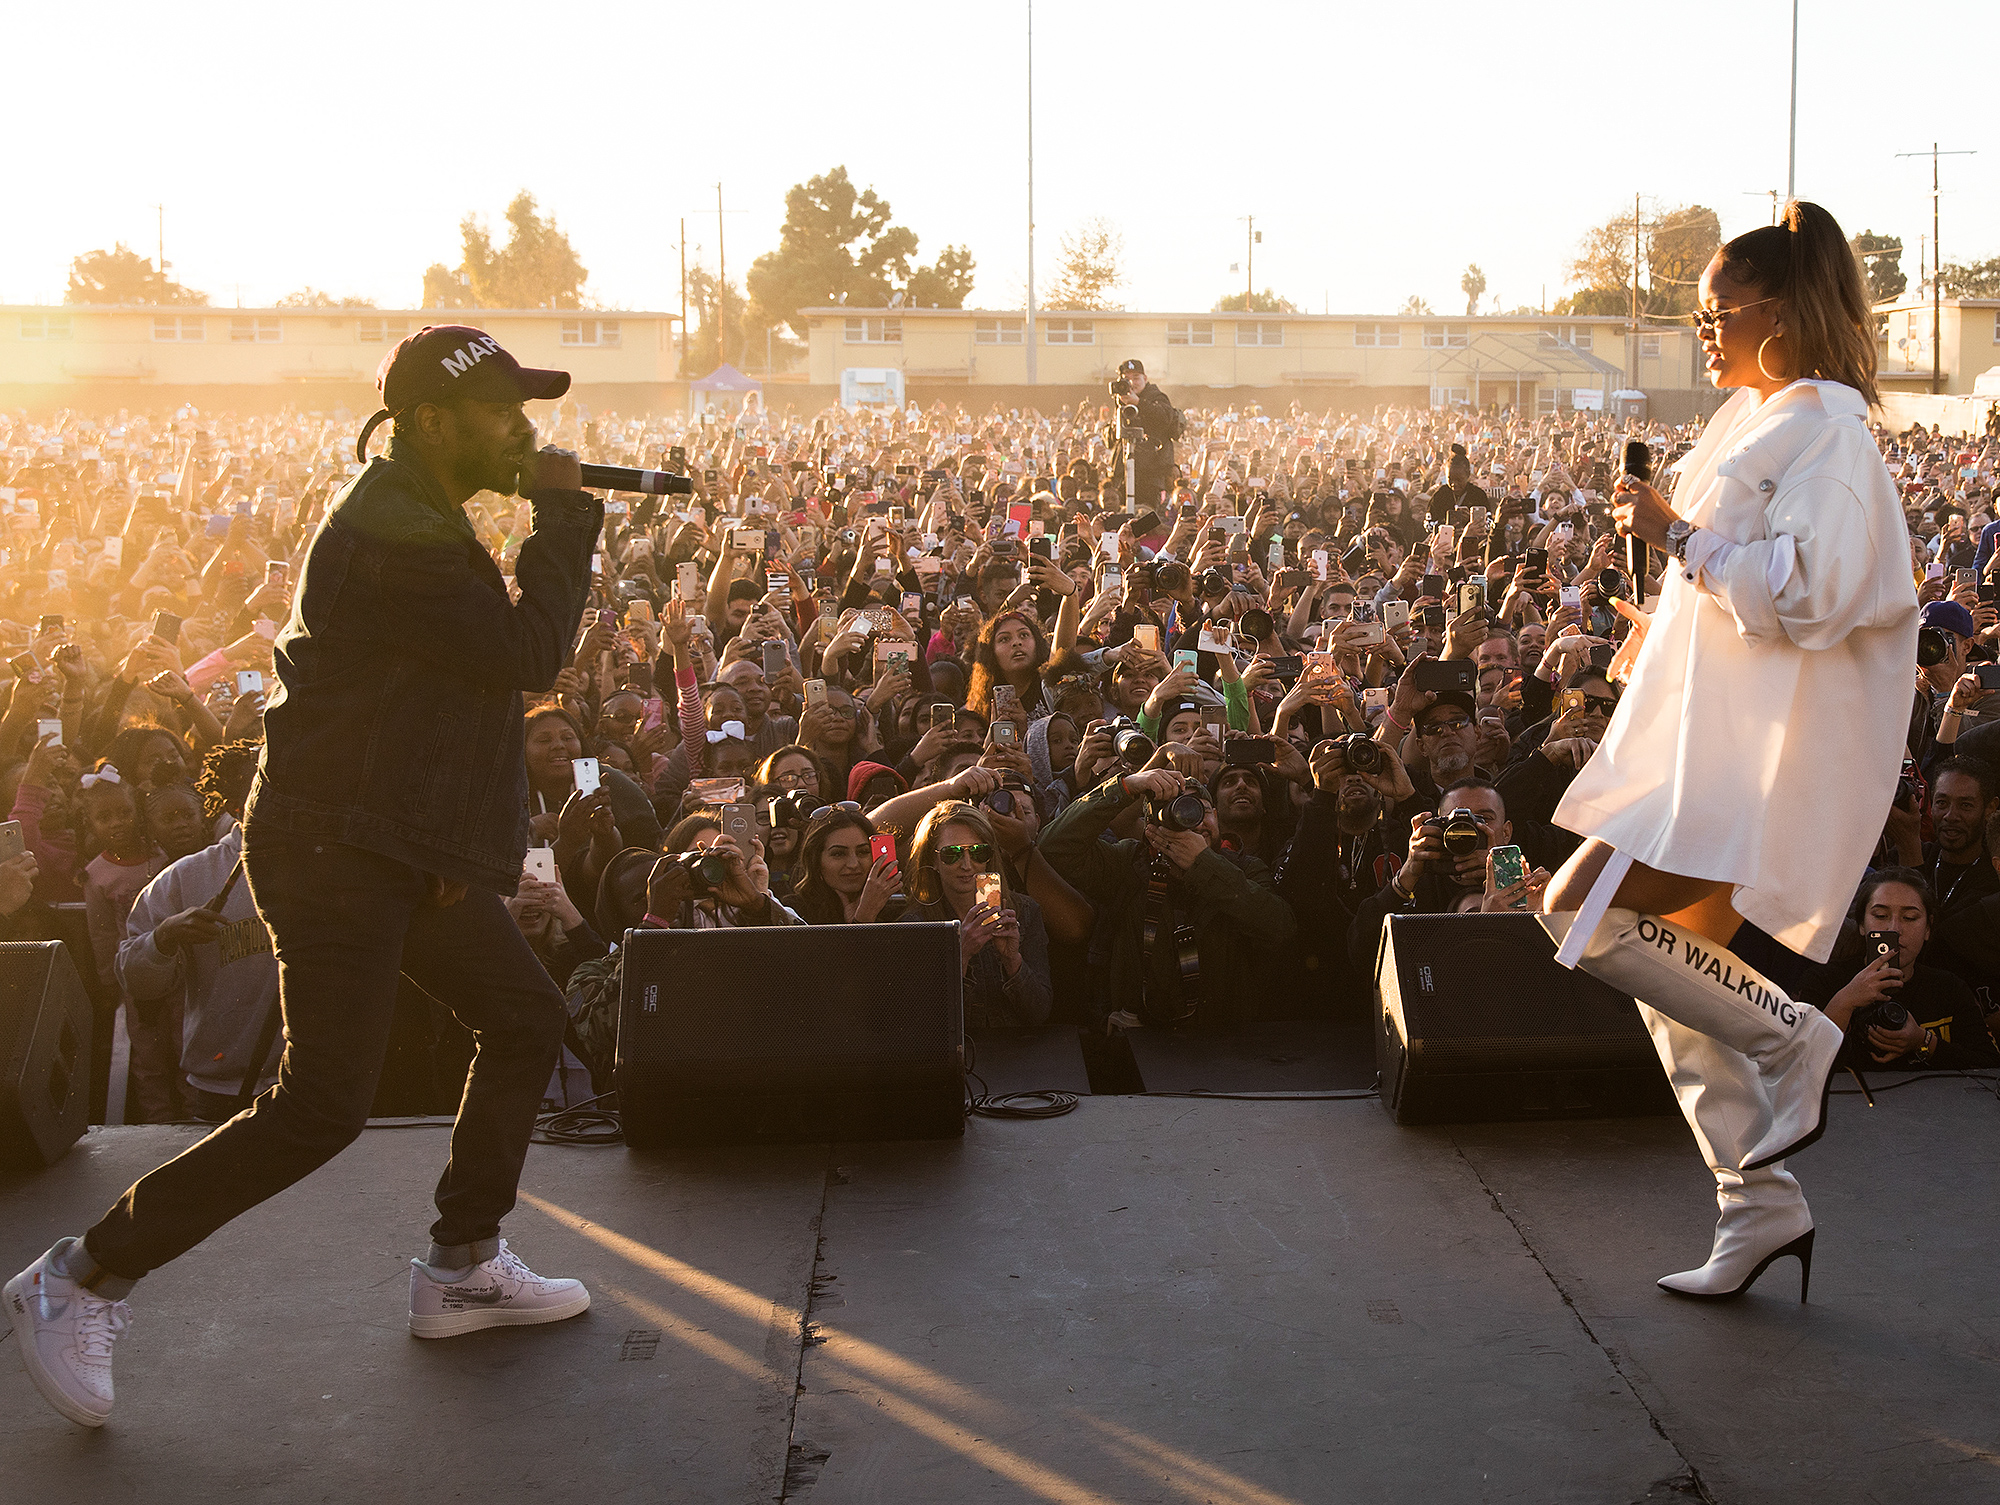 EXCLUSIVE: Rihanna and Kendrick Lamar are both seen performing together on stage at the TDE Annual Christmas Concert held in Watts, CA